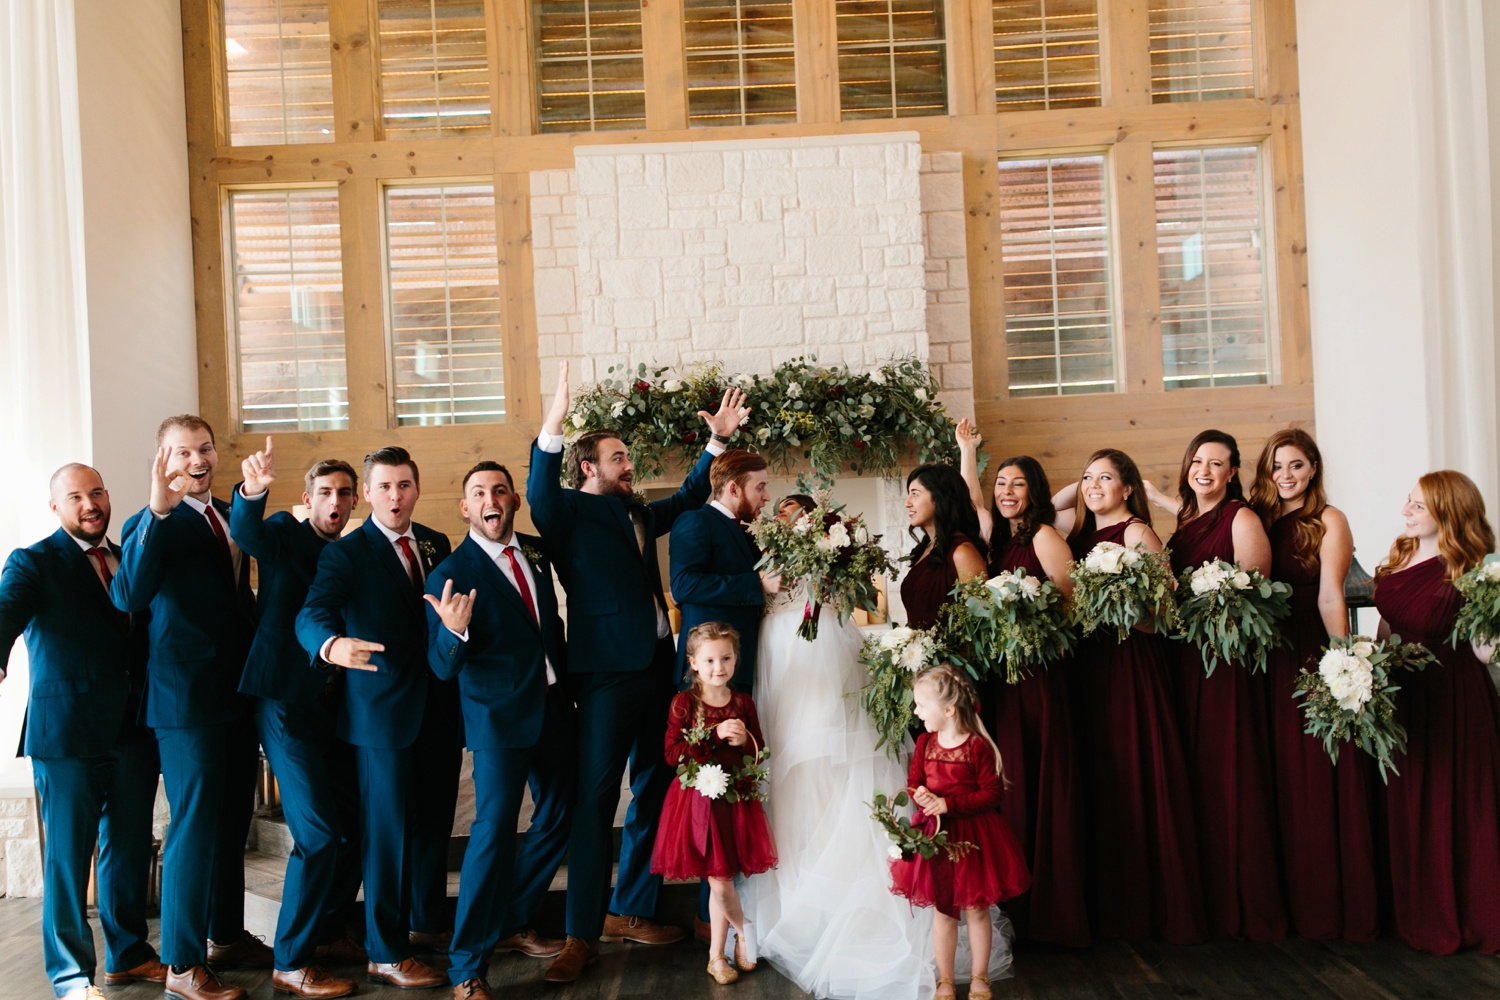 Grant + Lysette | a vibrant, deep burgundy and navy, and mixed metals wedding at Hidden Pines Chapel by North Texas Wedding Photographer Rachel Meagan Photography 121